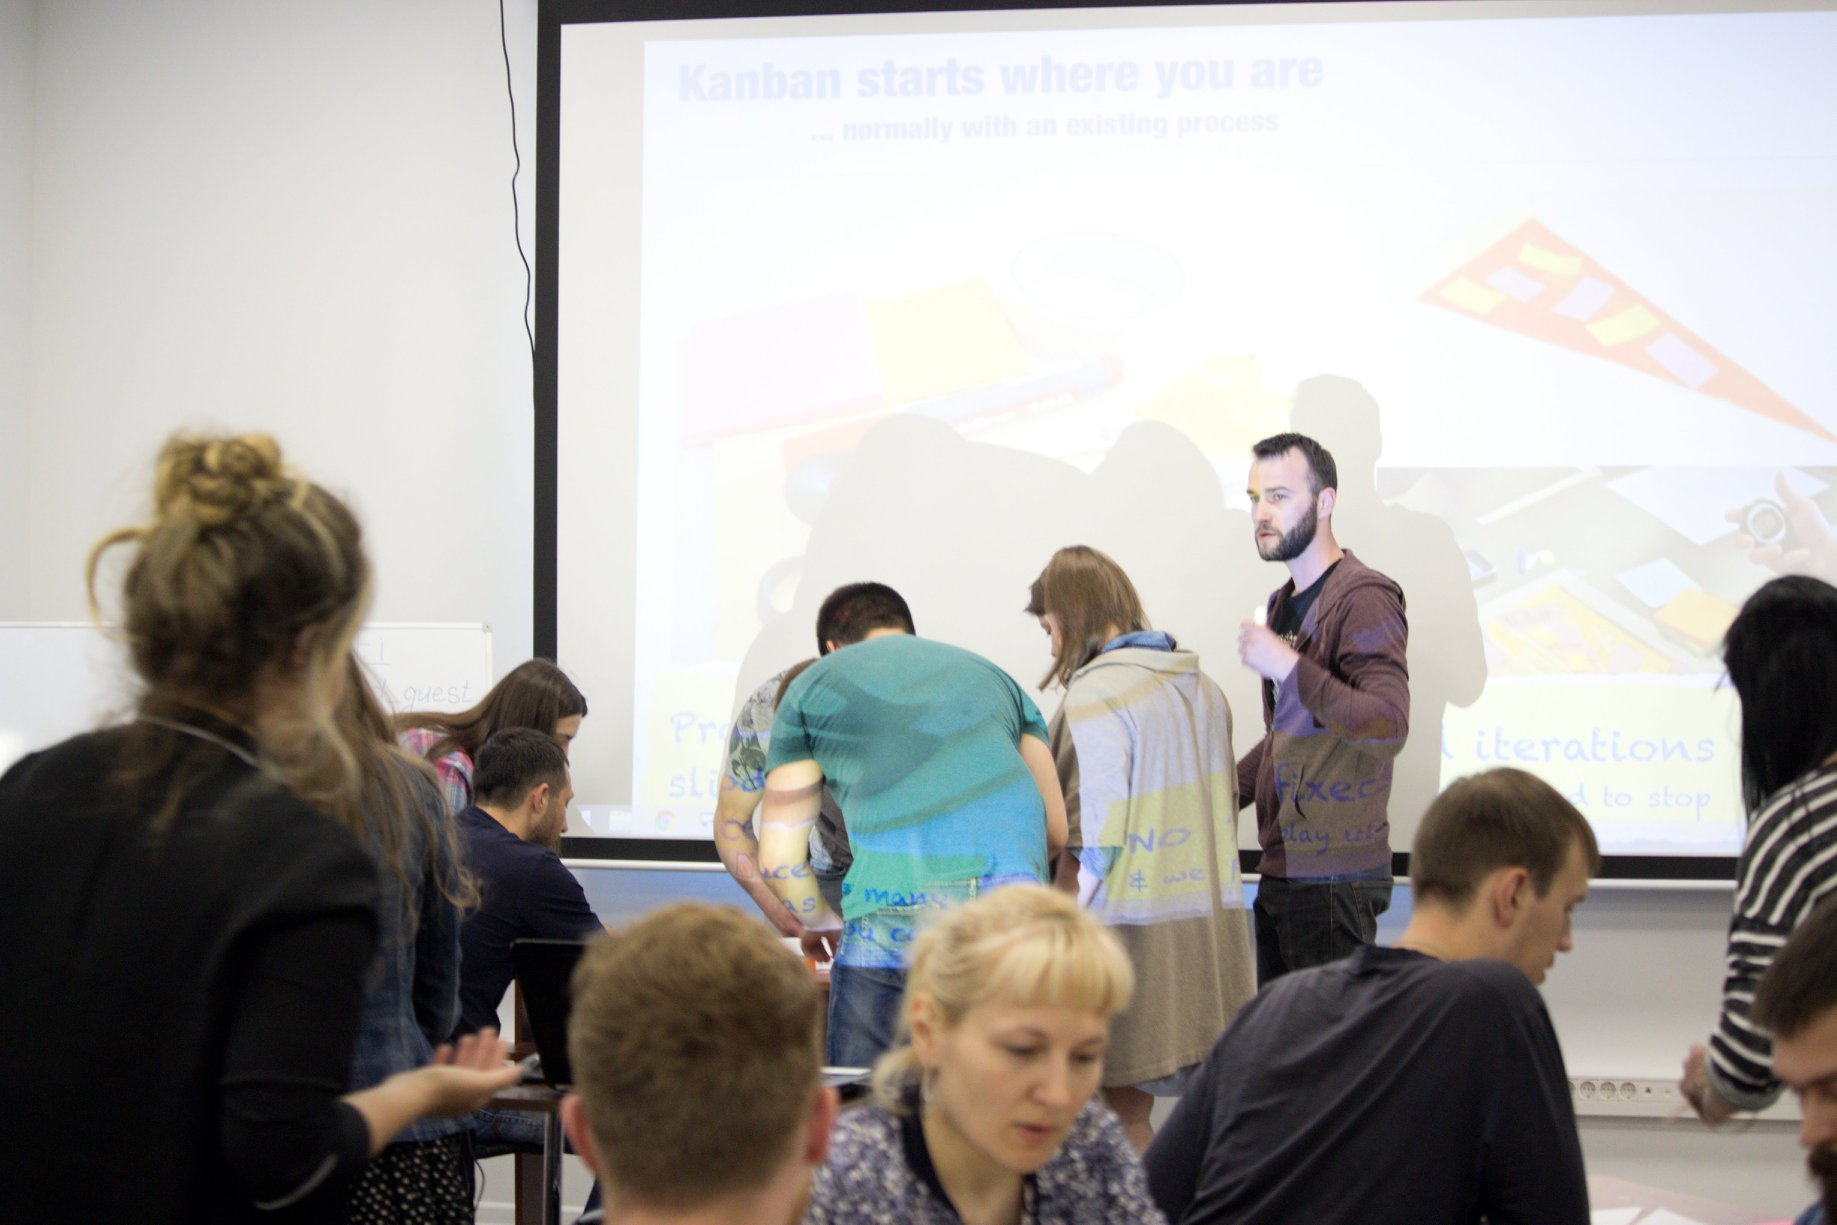 Kanban Pizza event which Cleveroad hosted in its Dnipro office